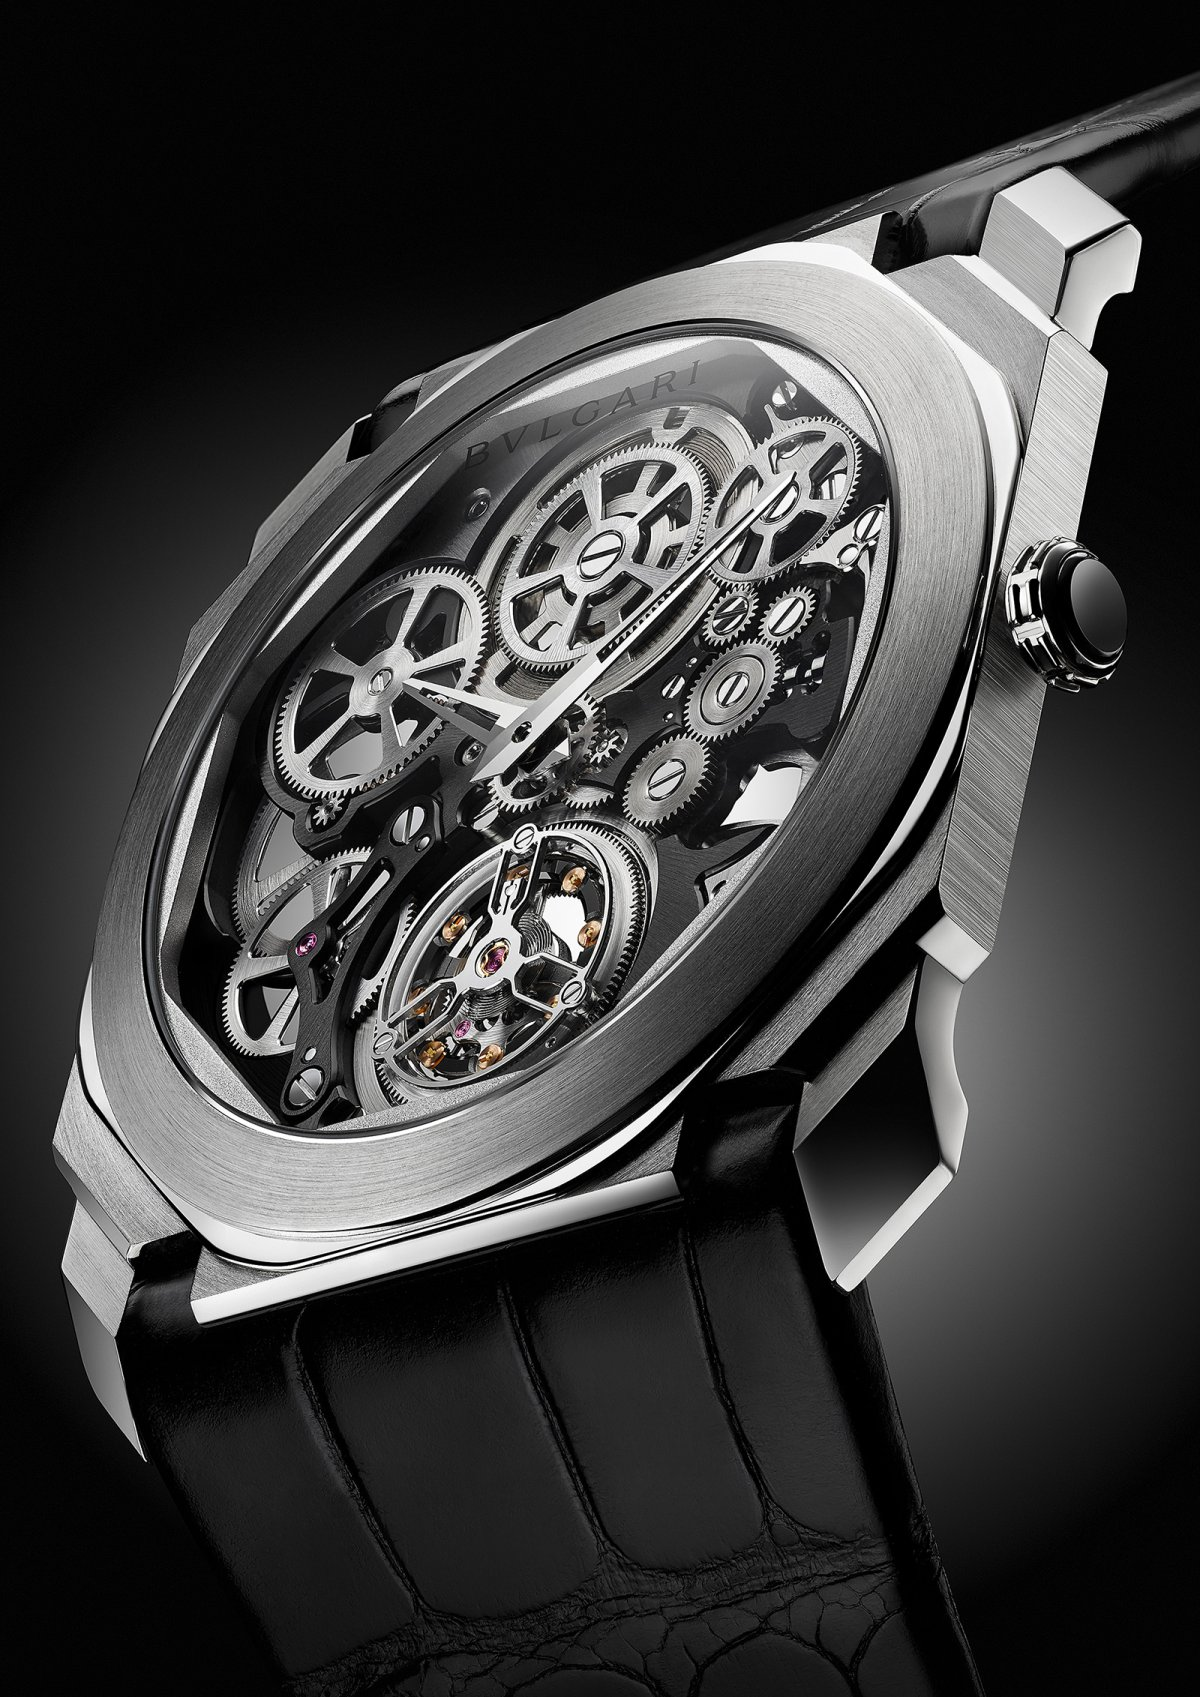 Bvlgari s expertise, expressed here in the platinum version of the Octo  Finissimo Tourbillon Skeleton, lies in the architectural dimension the  watchmakers ... d79242d4c2e